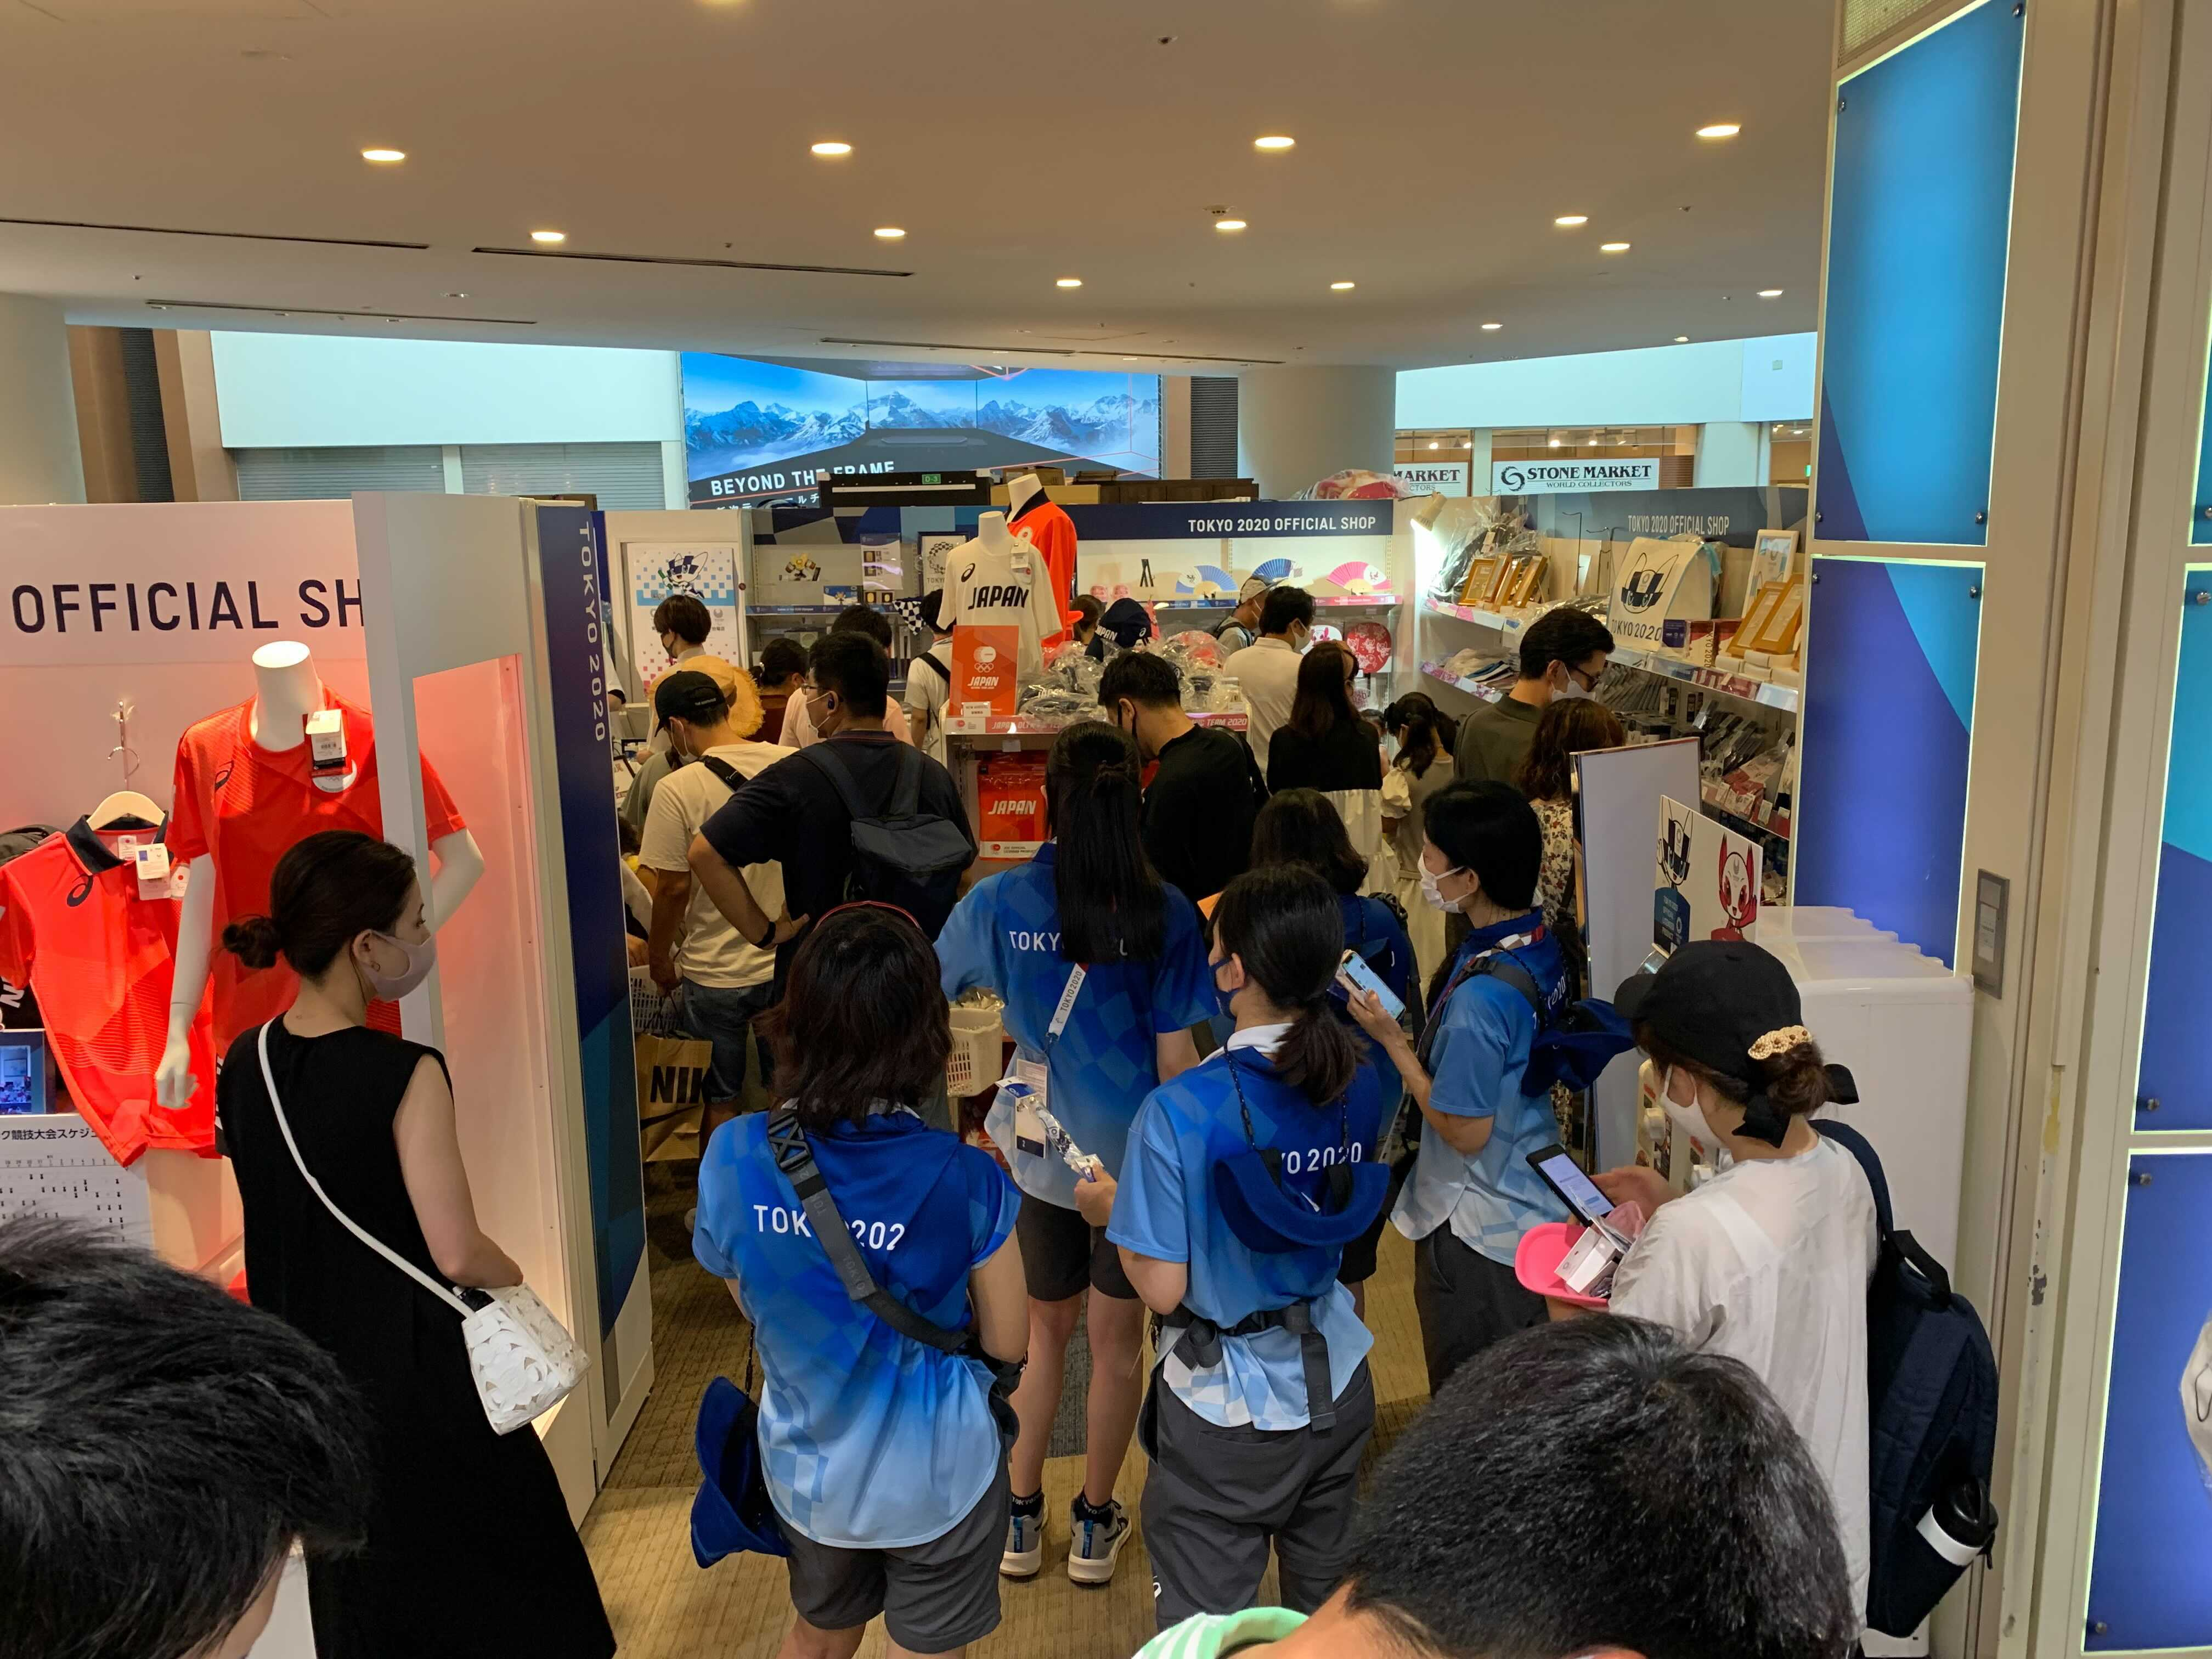 Fans lining up to buy their Tokyo 2020 souvenirs.